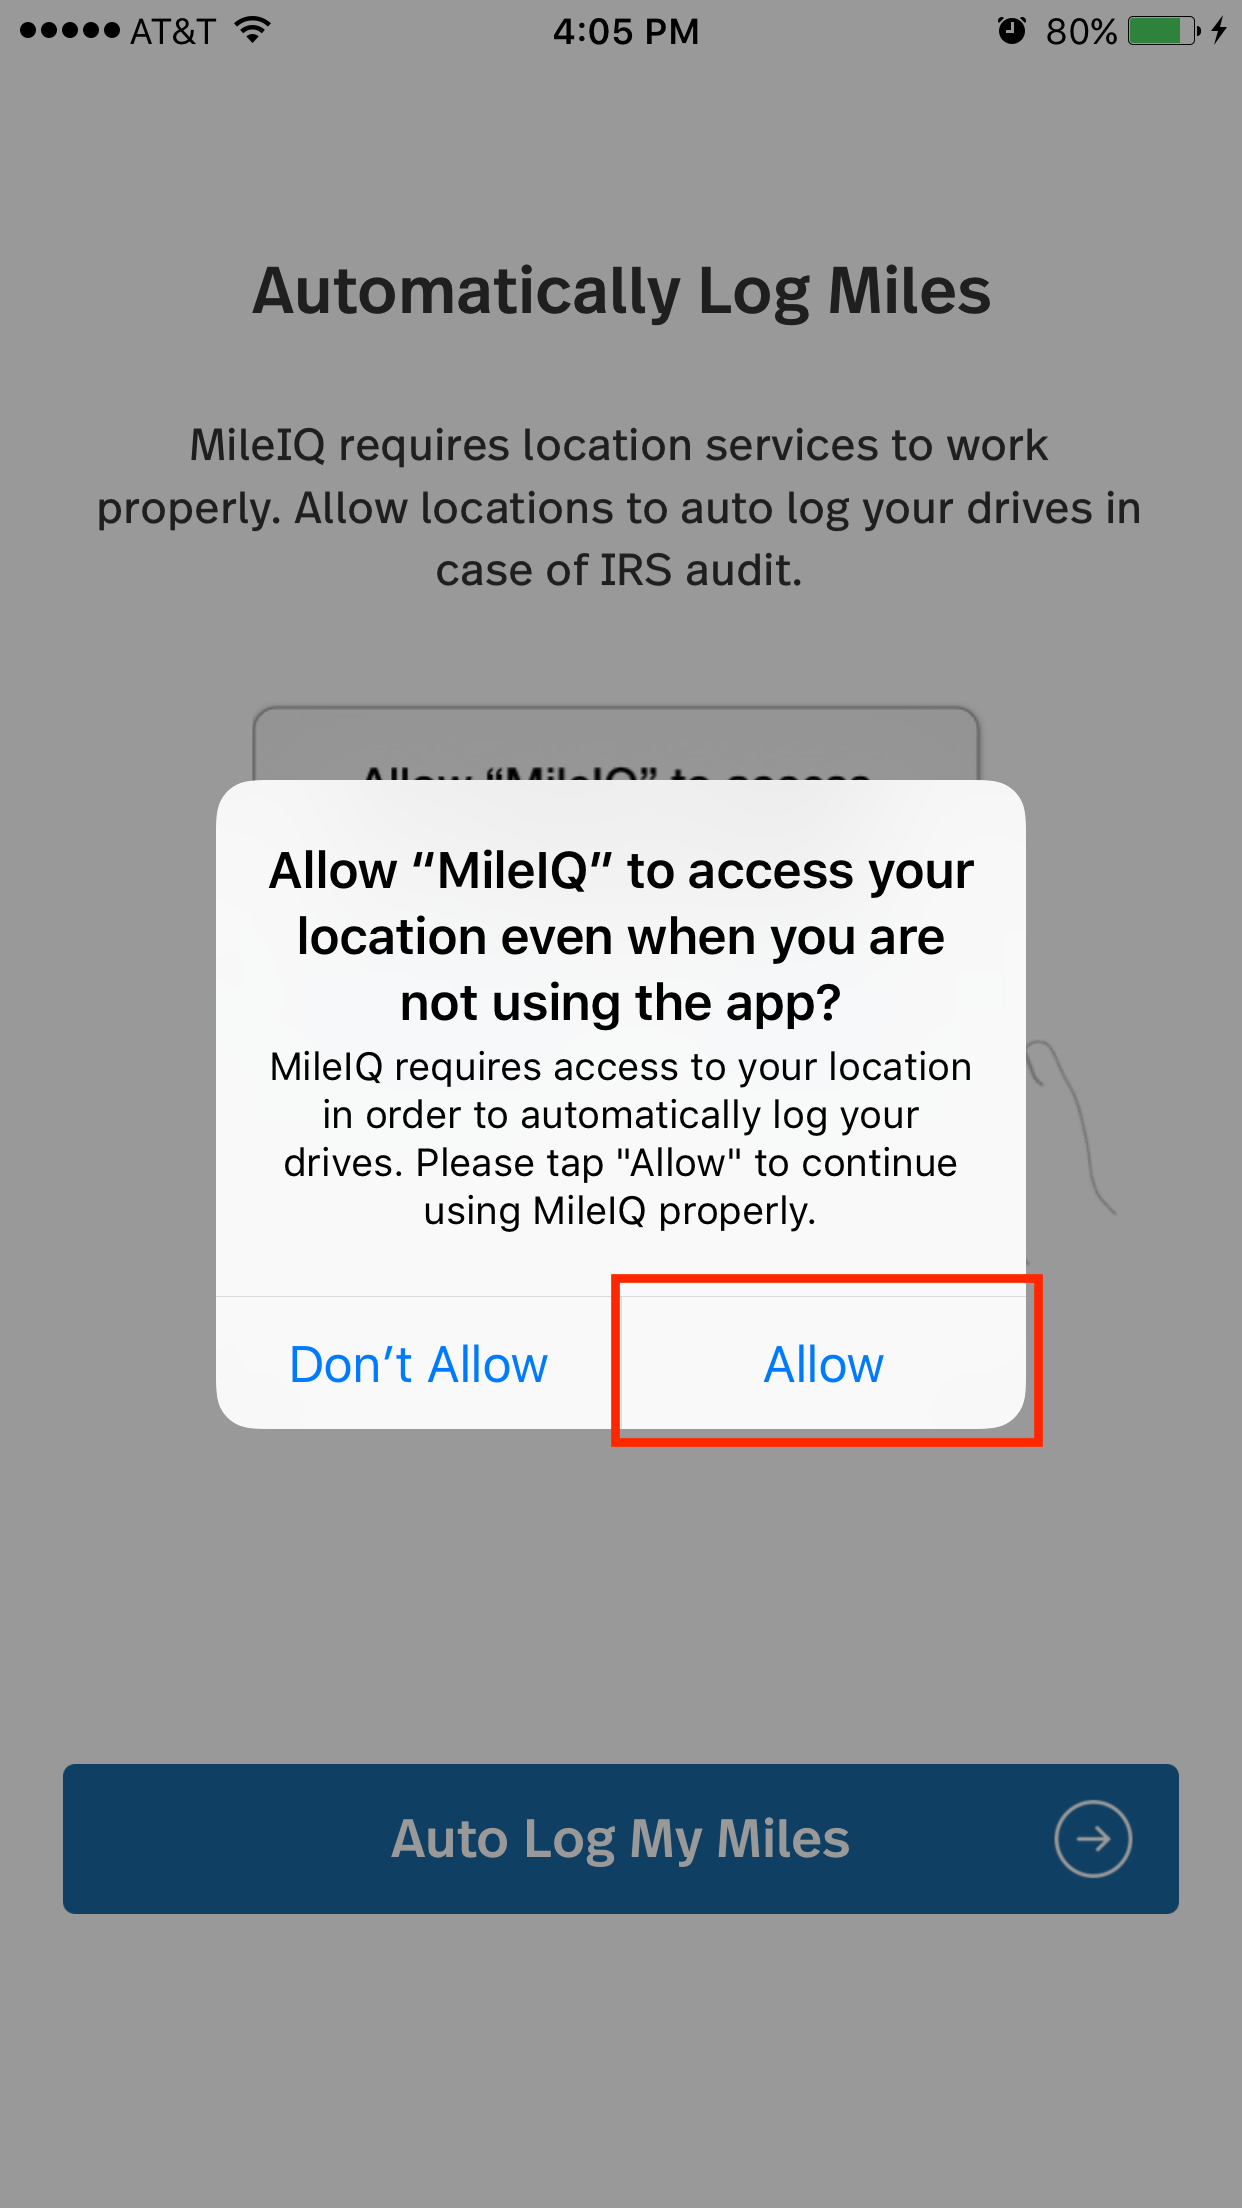 Shop customer account login/downloader - 3 Open The Mileiq App To Complete The New Customer Account Setup